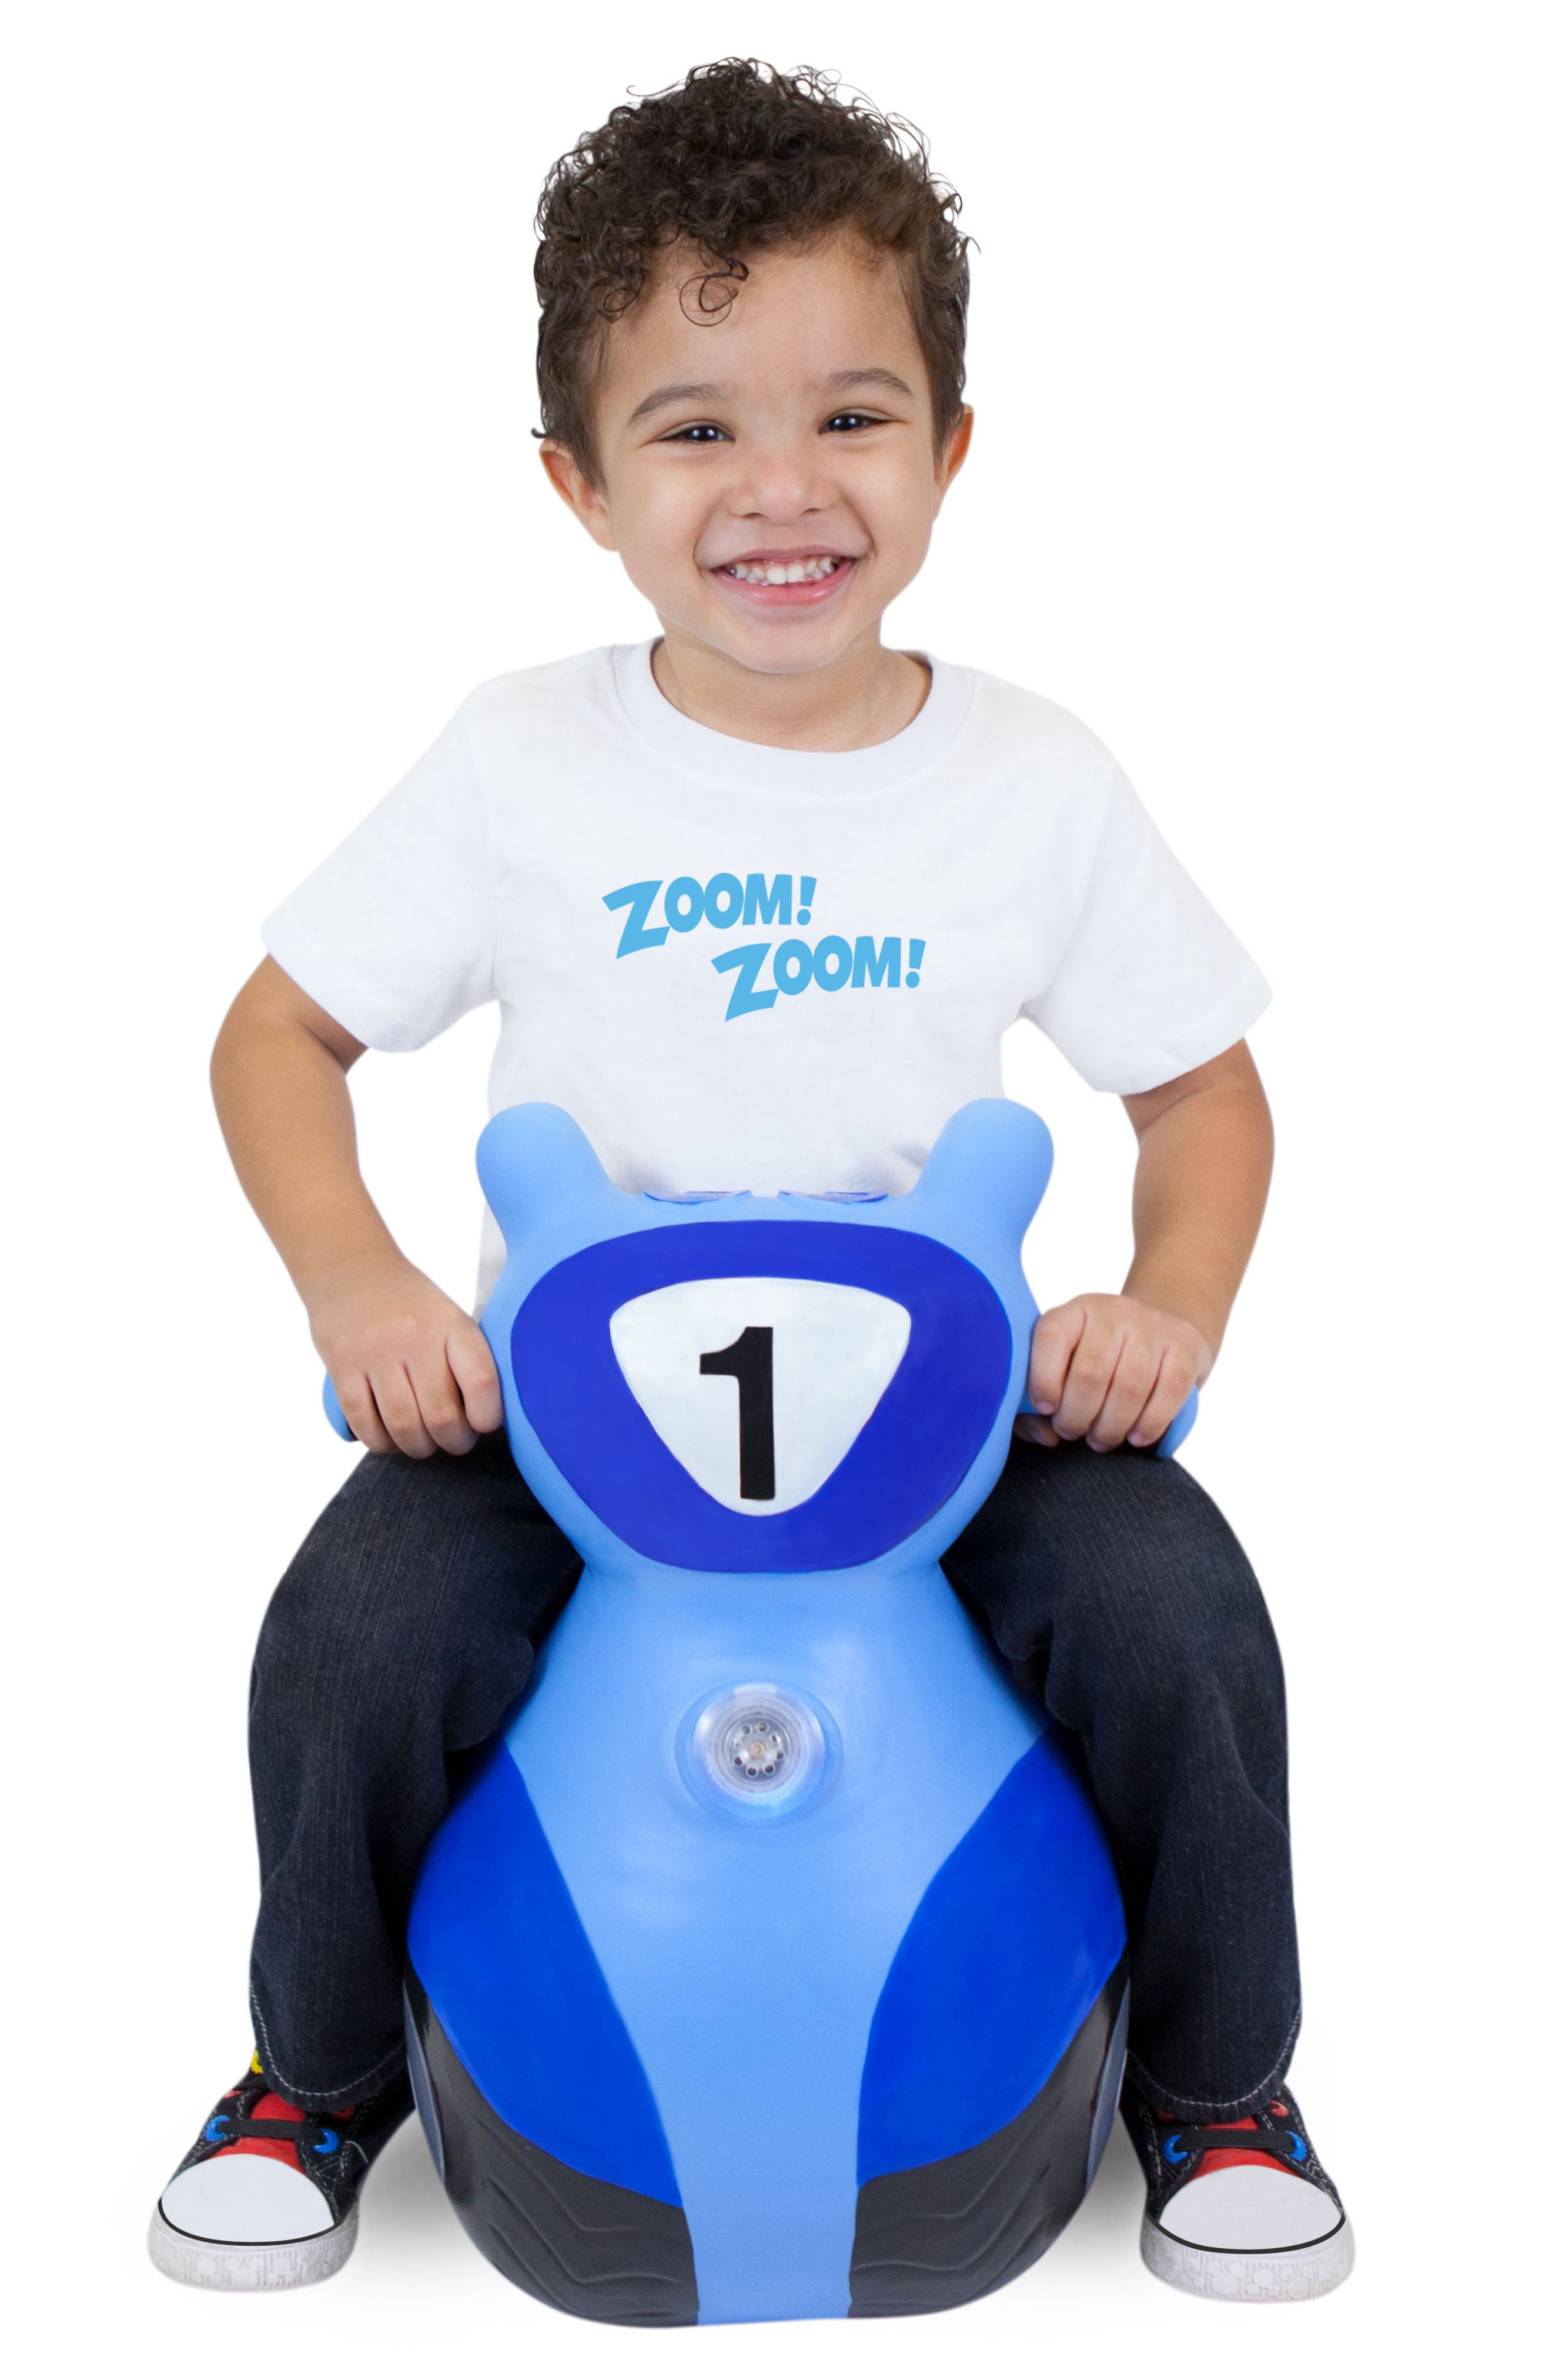 Scooter Bouncy Ride-On Scooter Toy,                             Alternate thumbnail 3, color,                             400